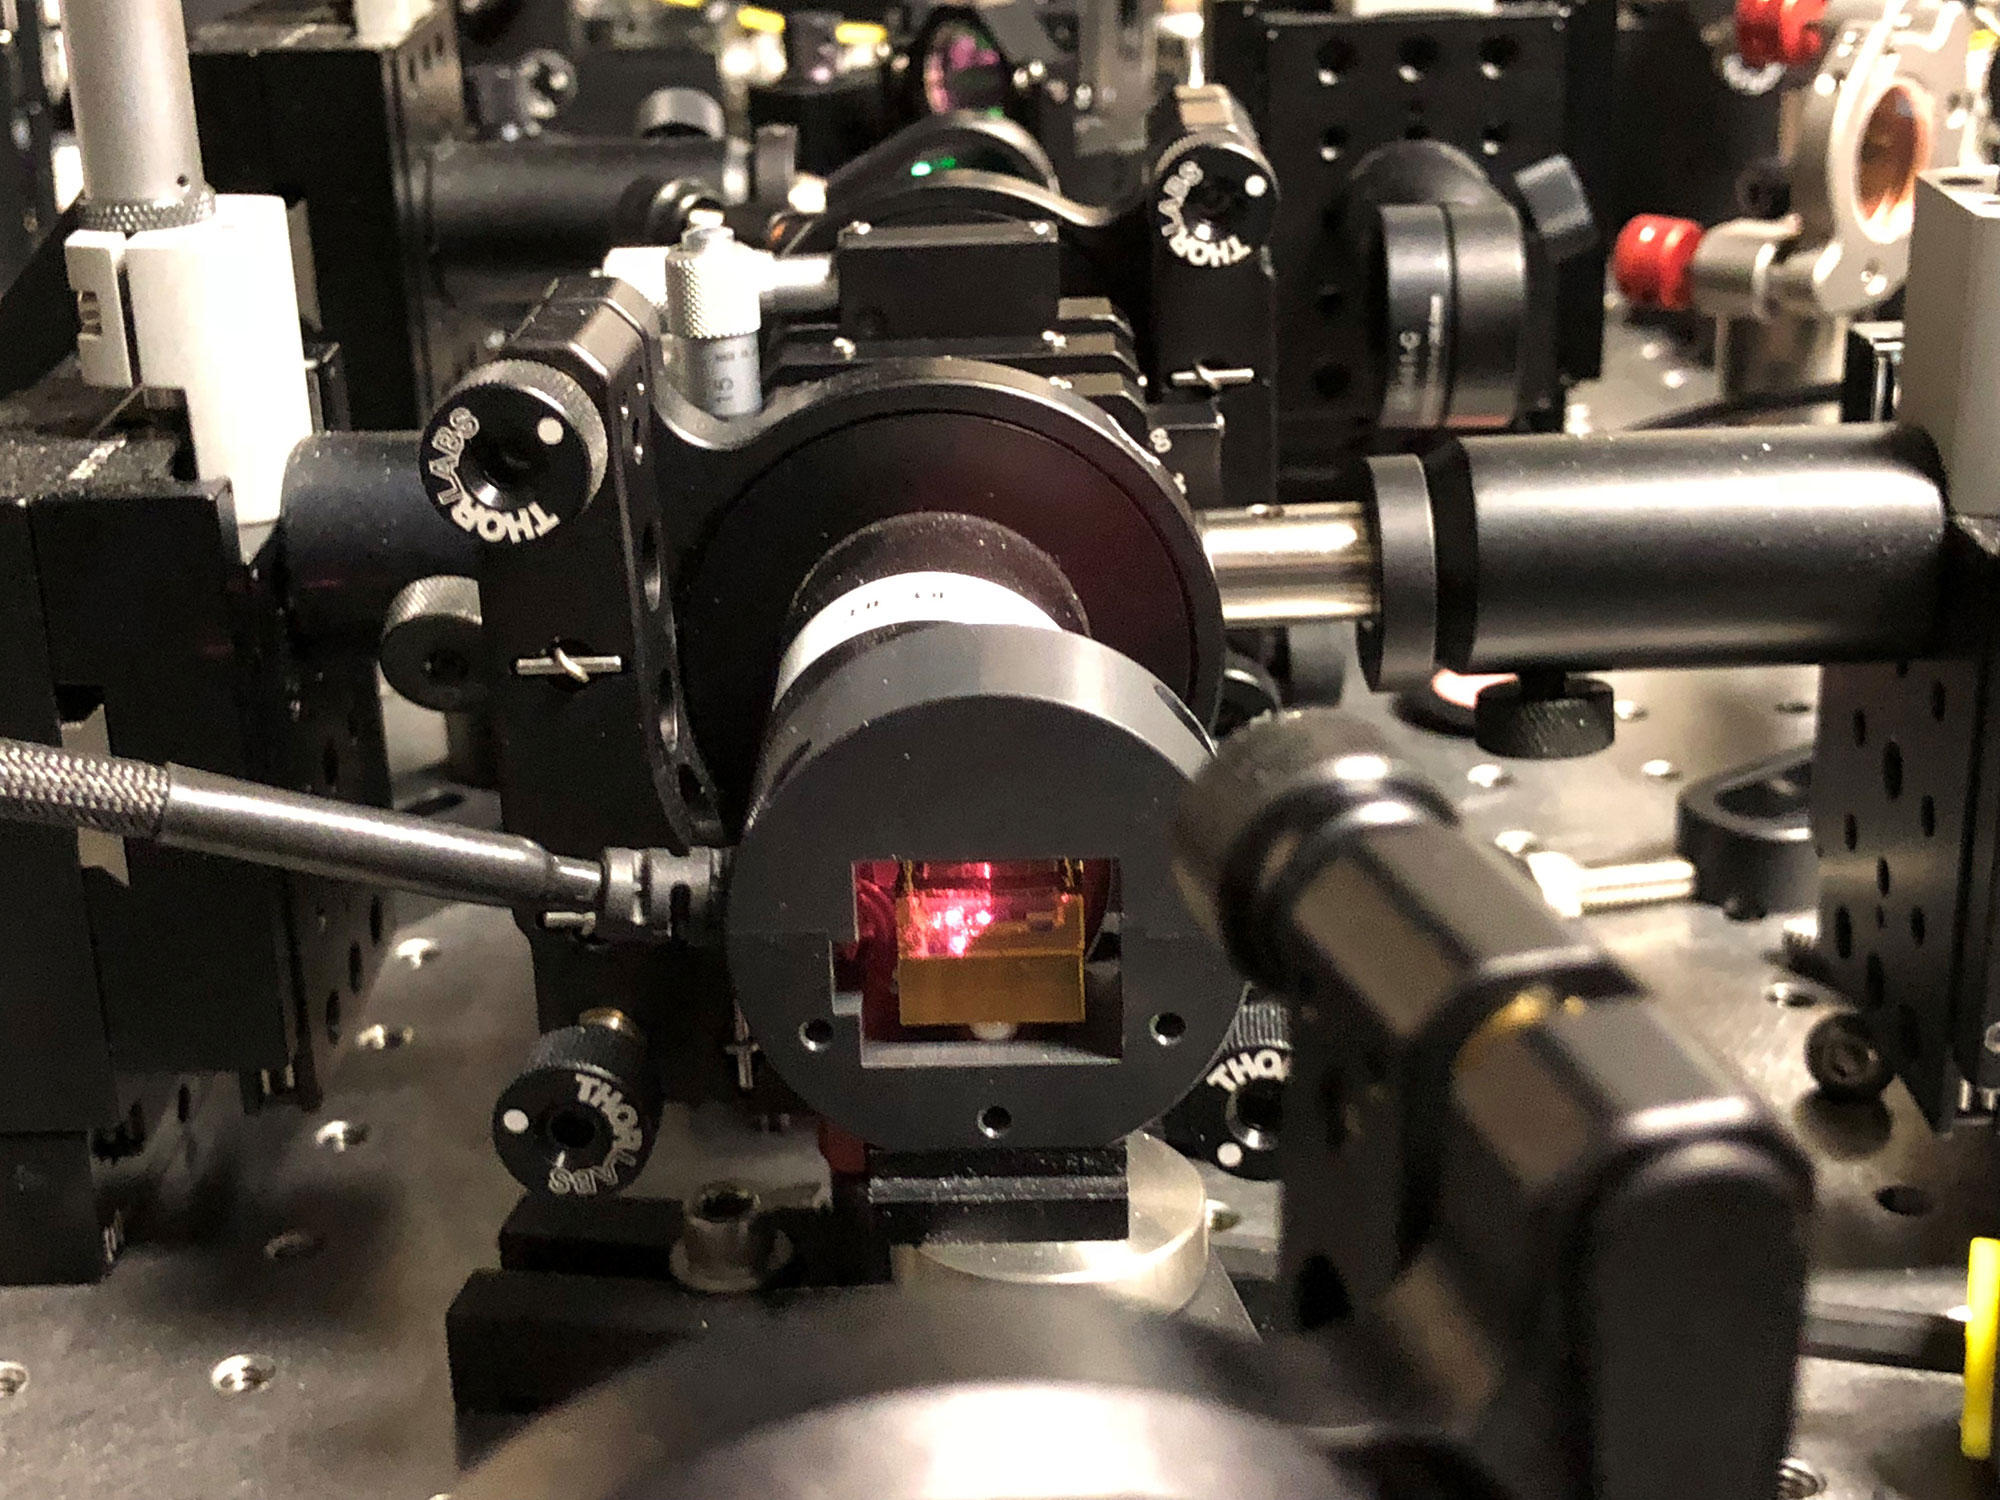 Part of NIST's system for generating provably random numbers through the weird nature of quantum physics.